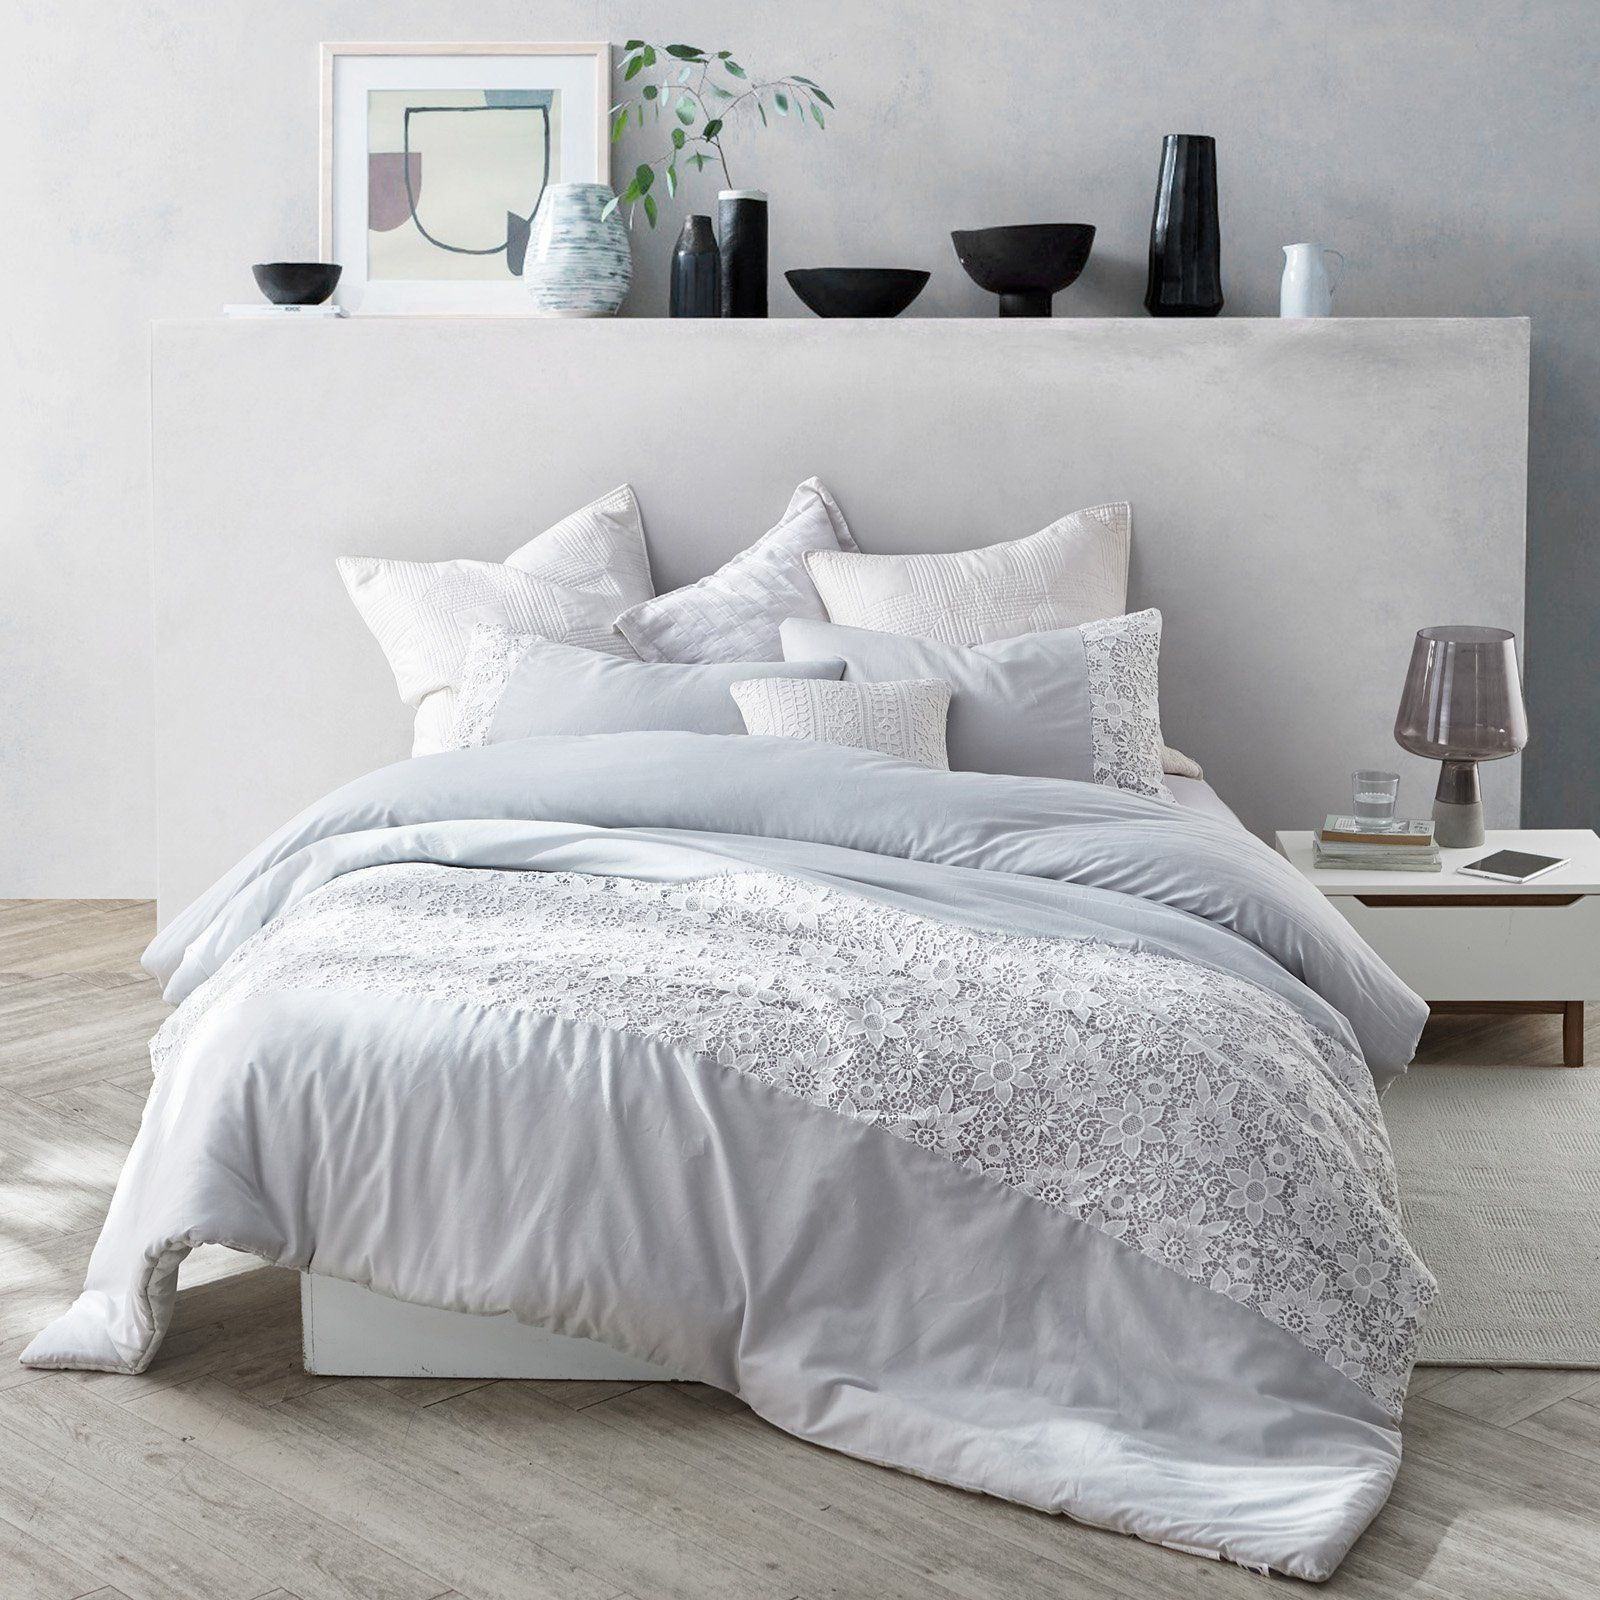 Photo of White Lace Duvet Cover by Byourbed Rose Quartz, Size: King